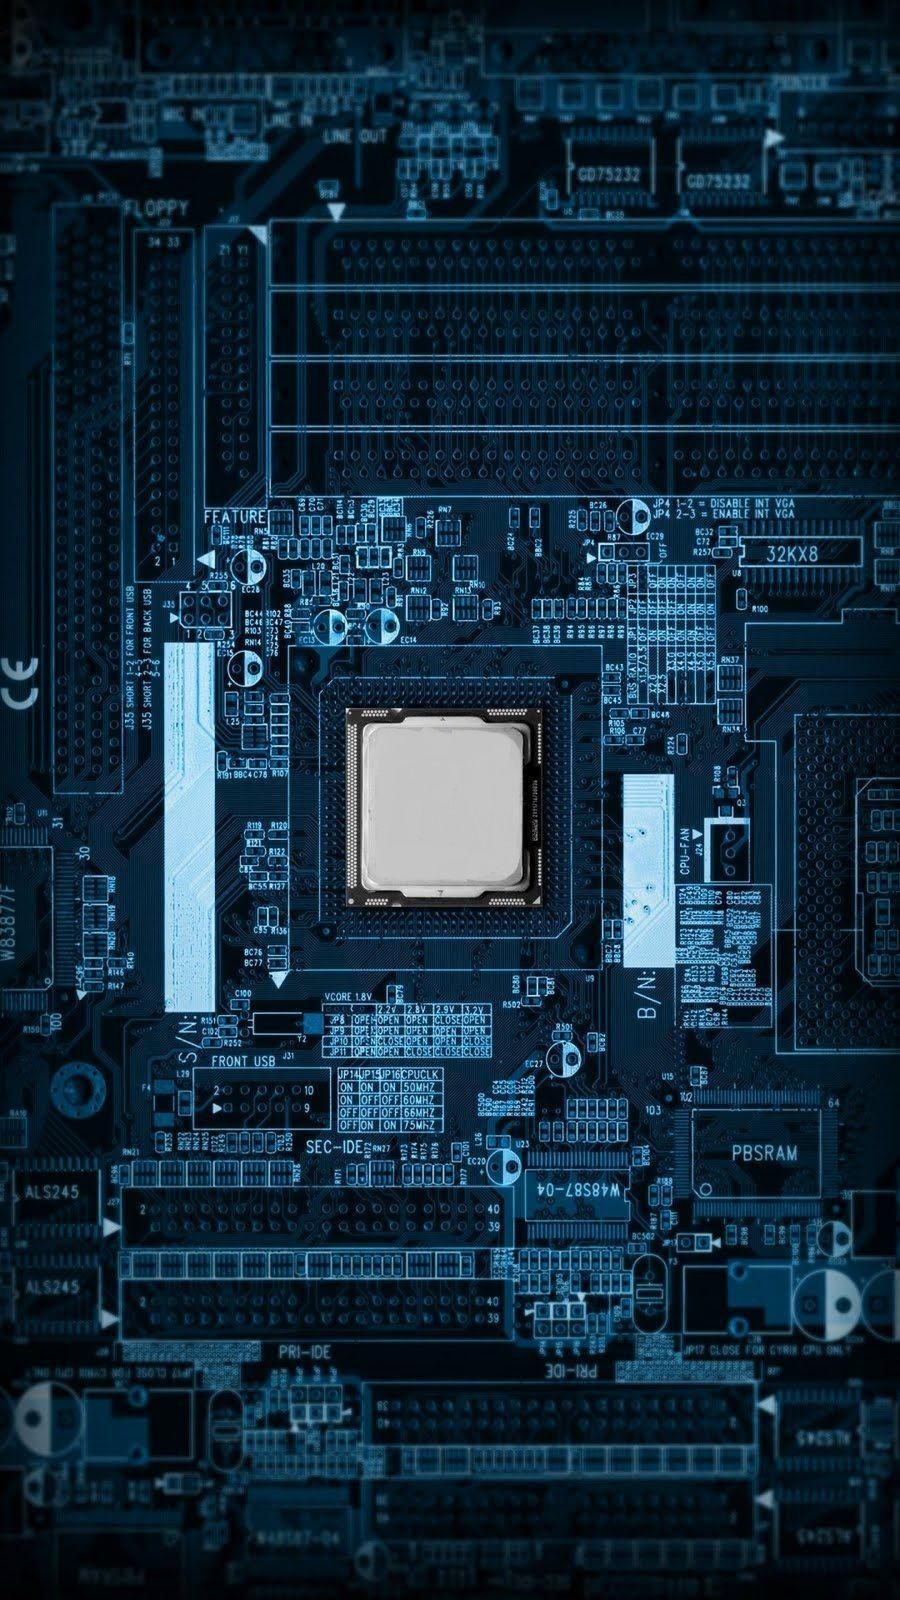 HD Motherboard Wallpaper - WallpaperSafari